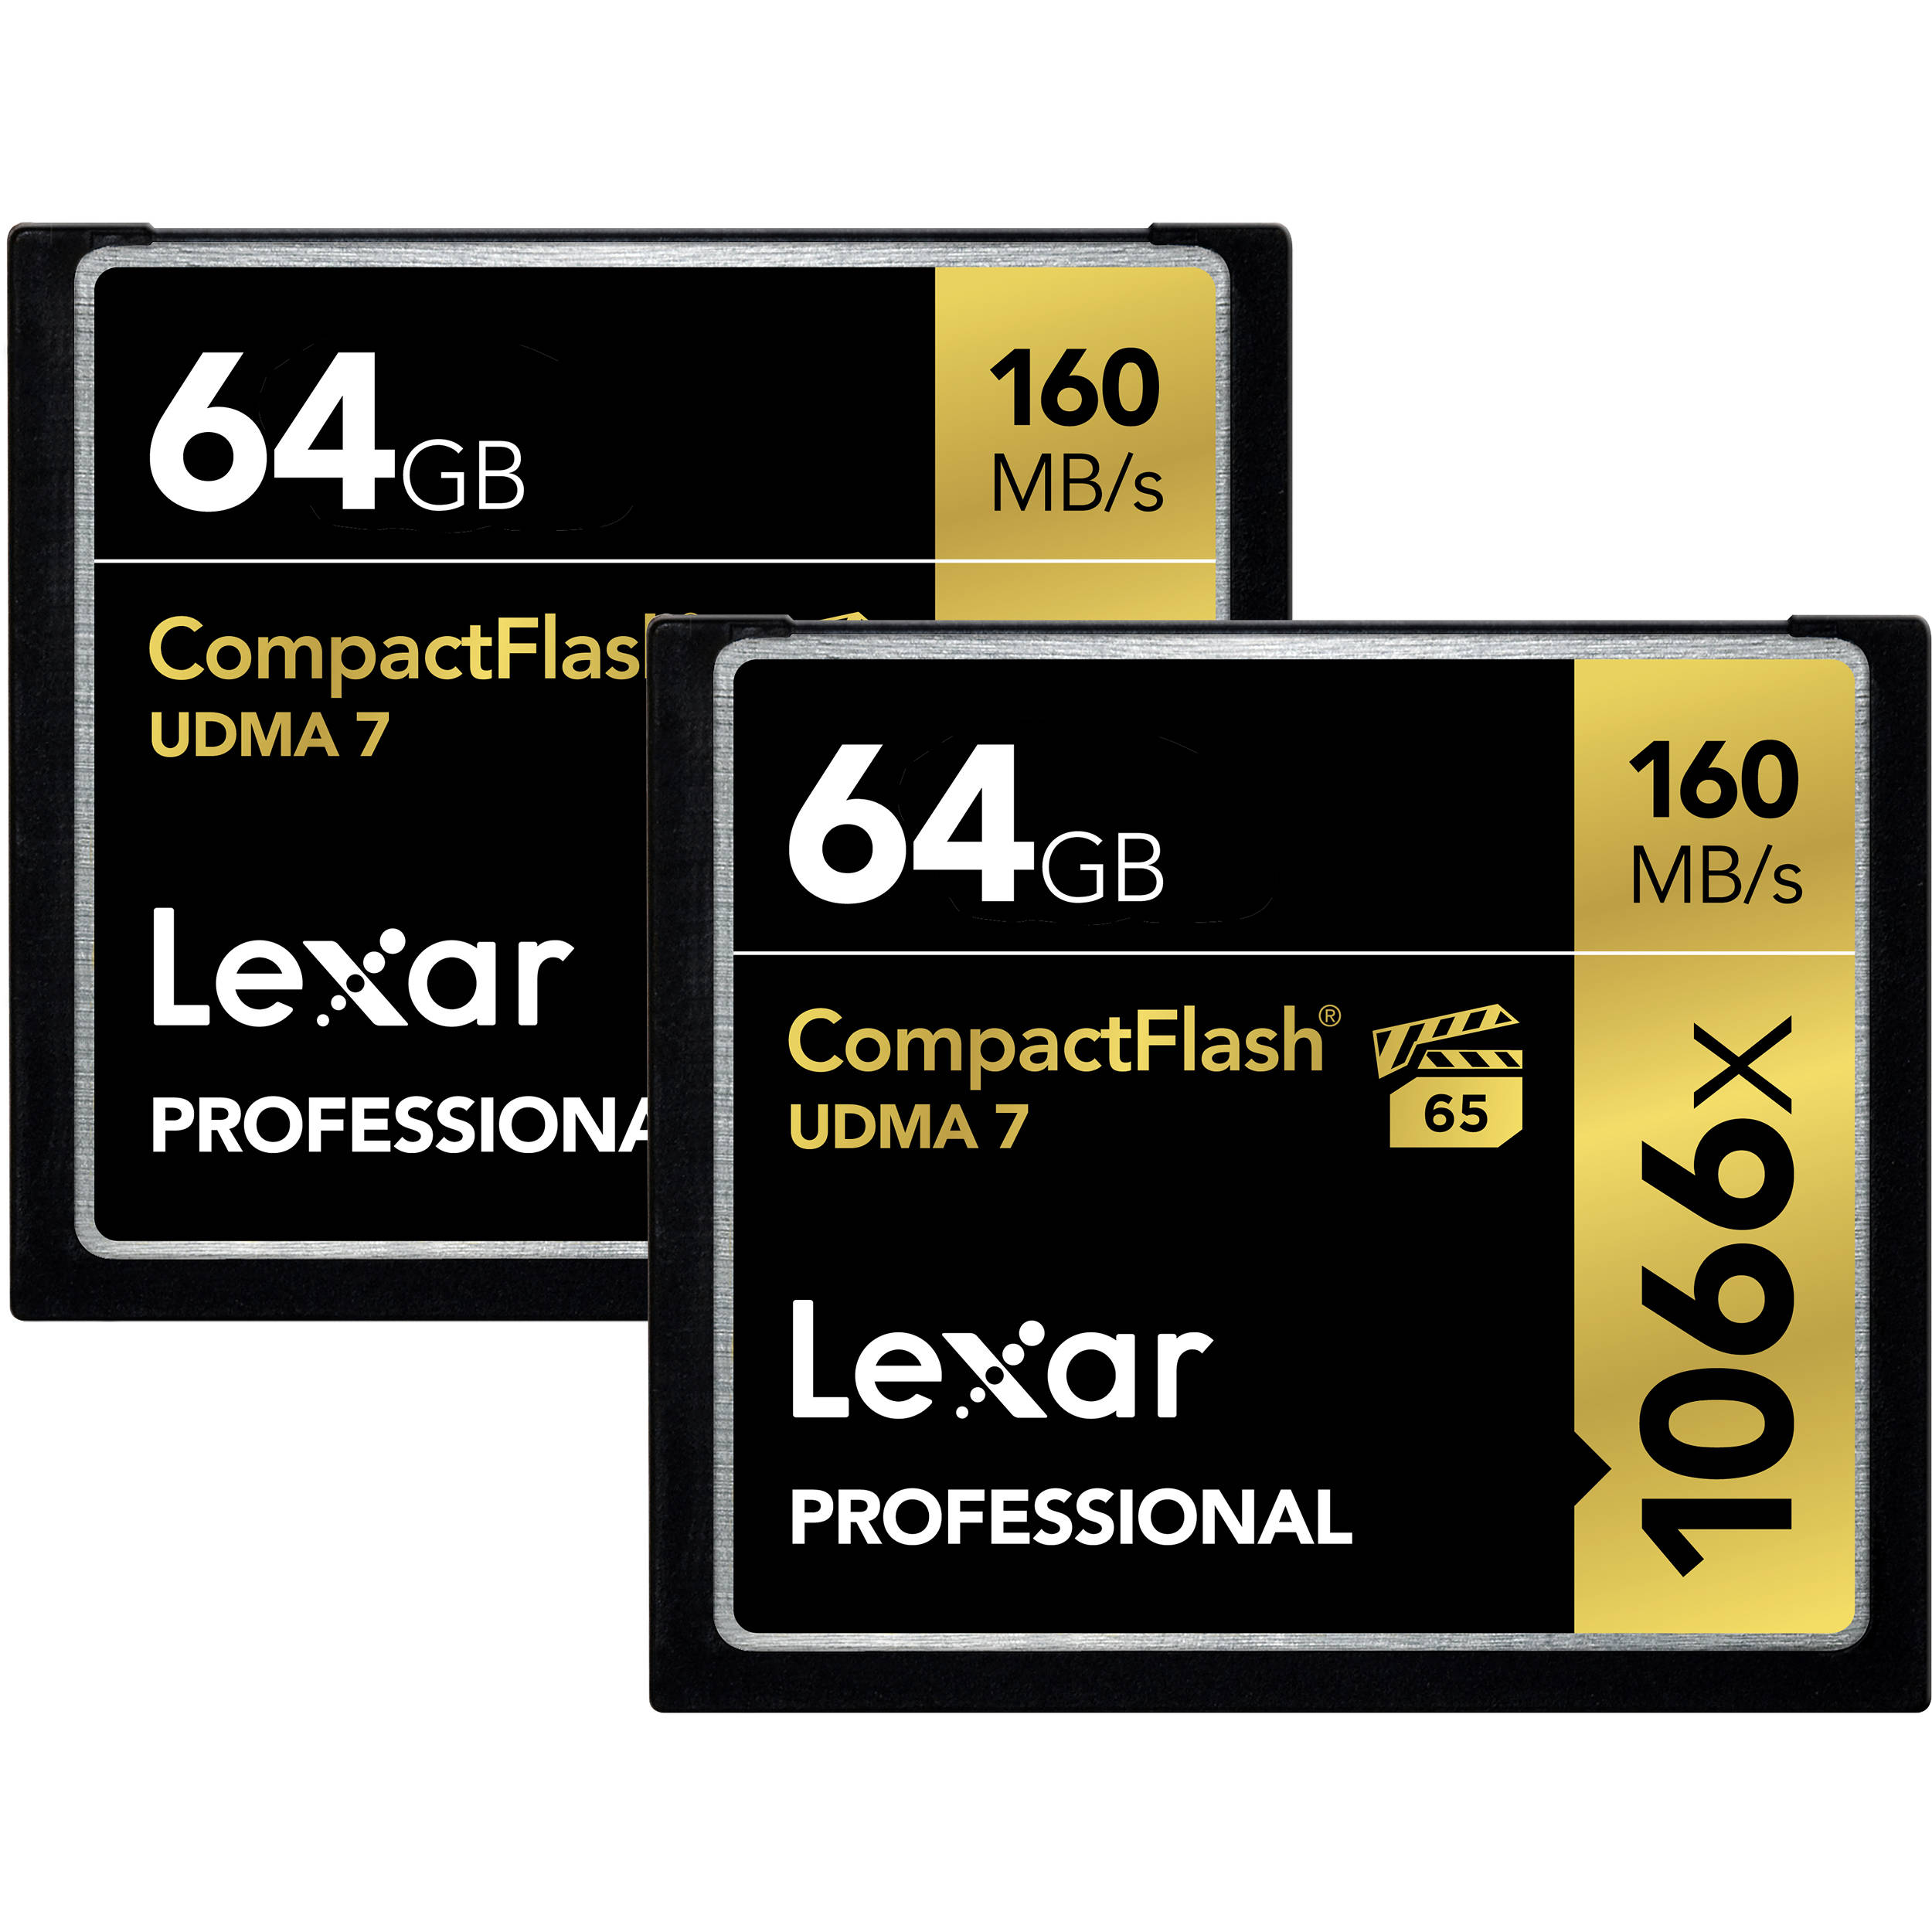 Compact Flash Best Compact Flash Card Reviews Of 2019 At Topproducts.com